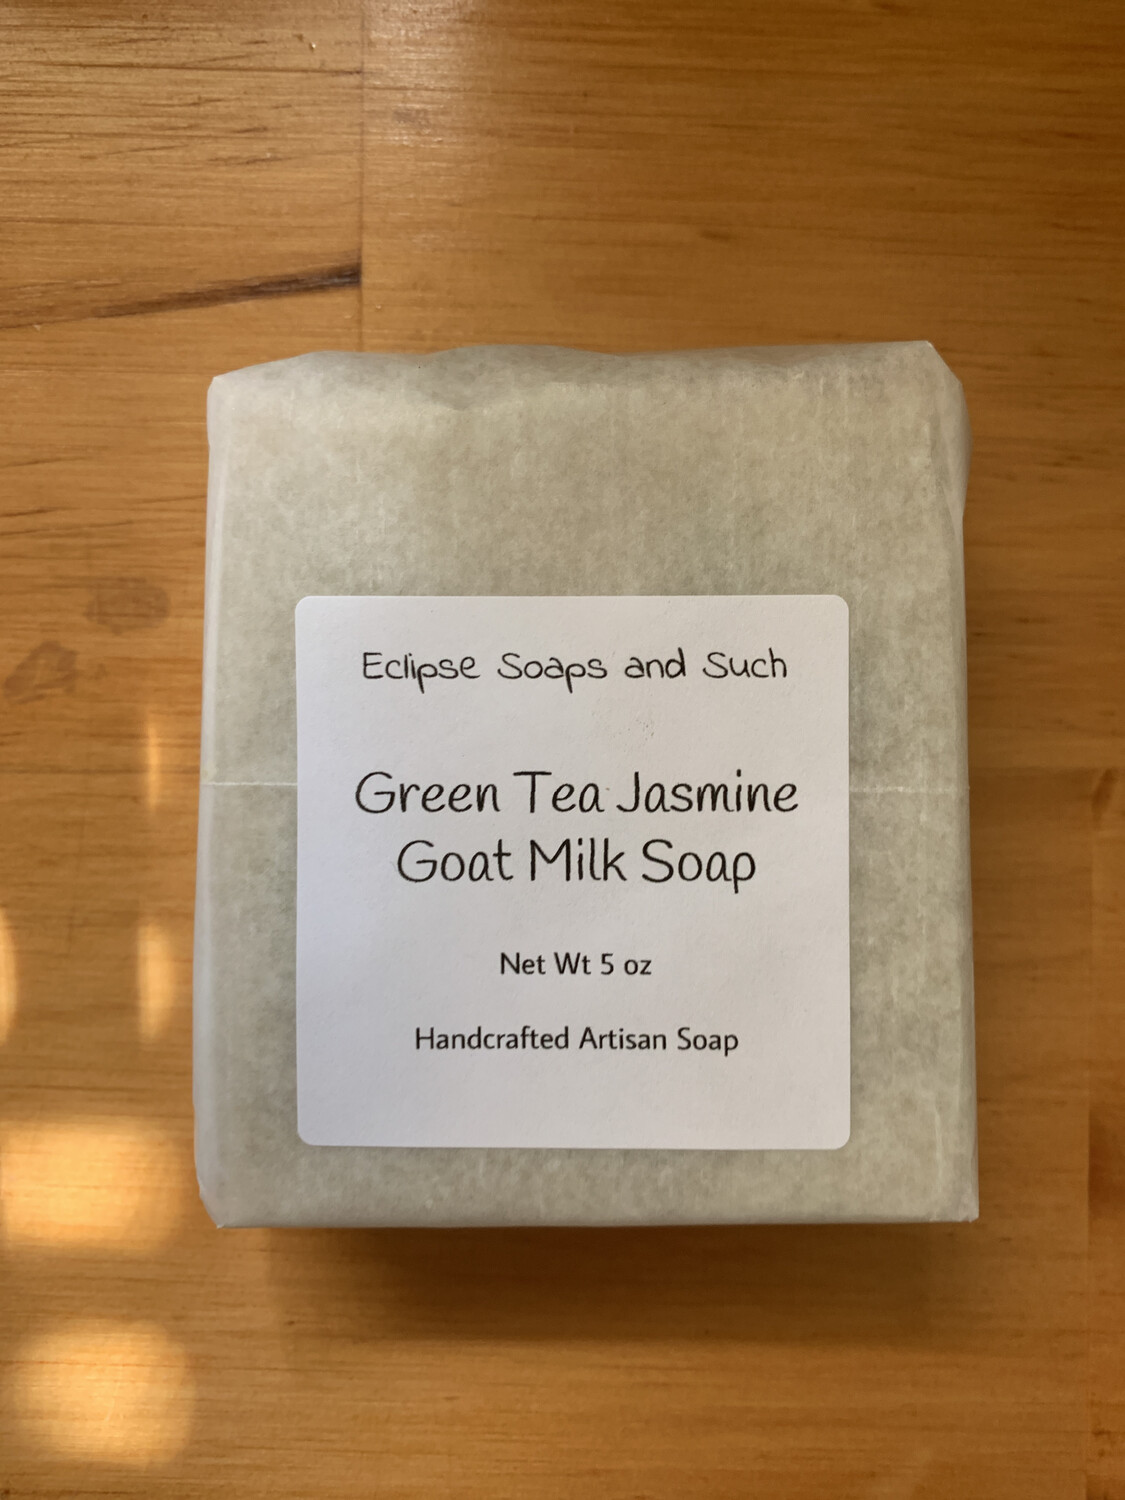 Green Tea Jasmine Goat Milk Soap 5oz